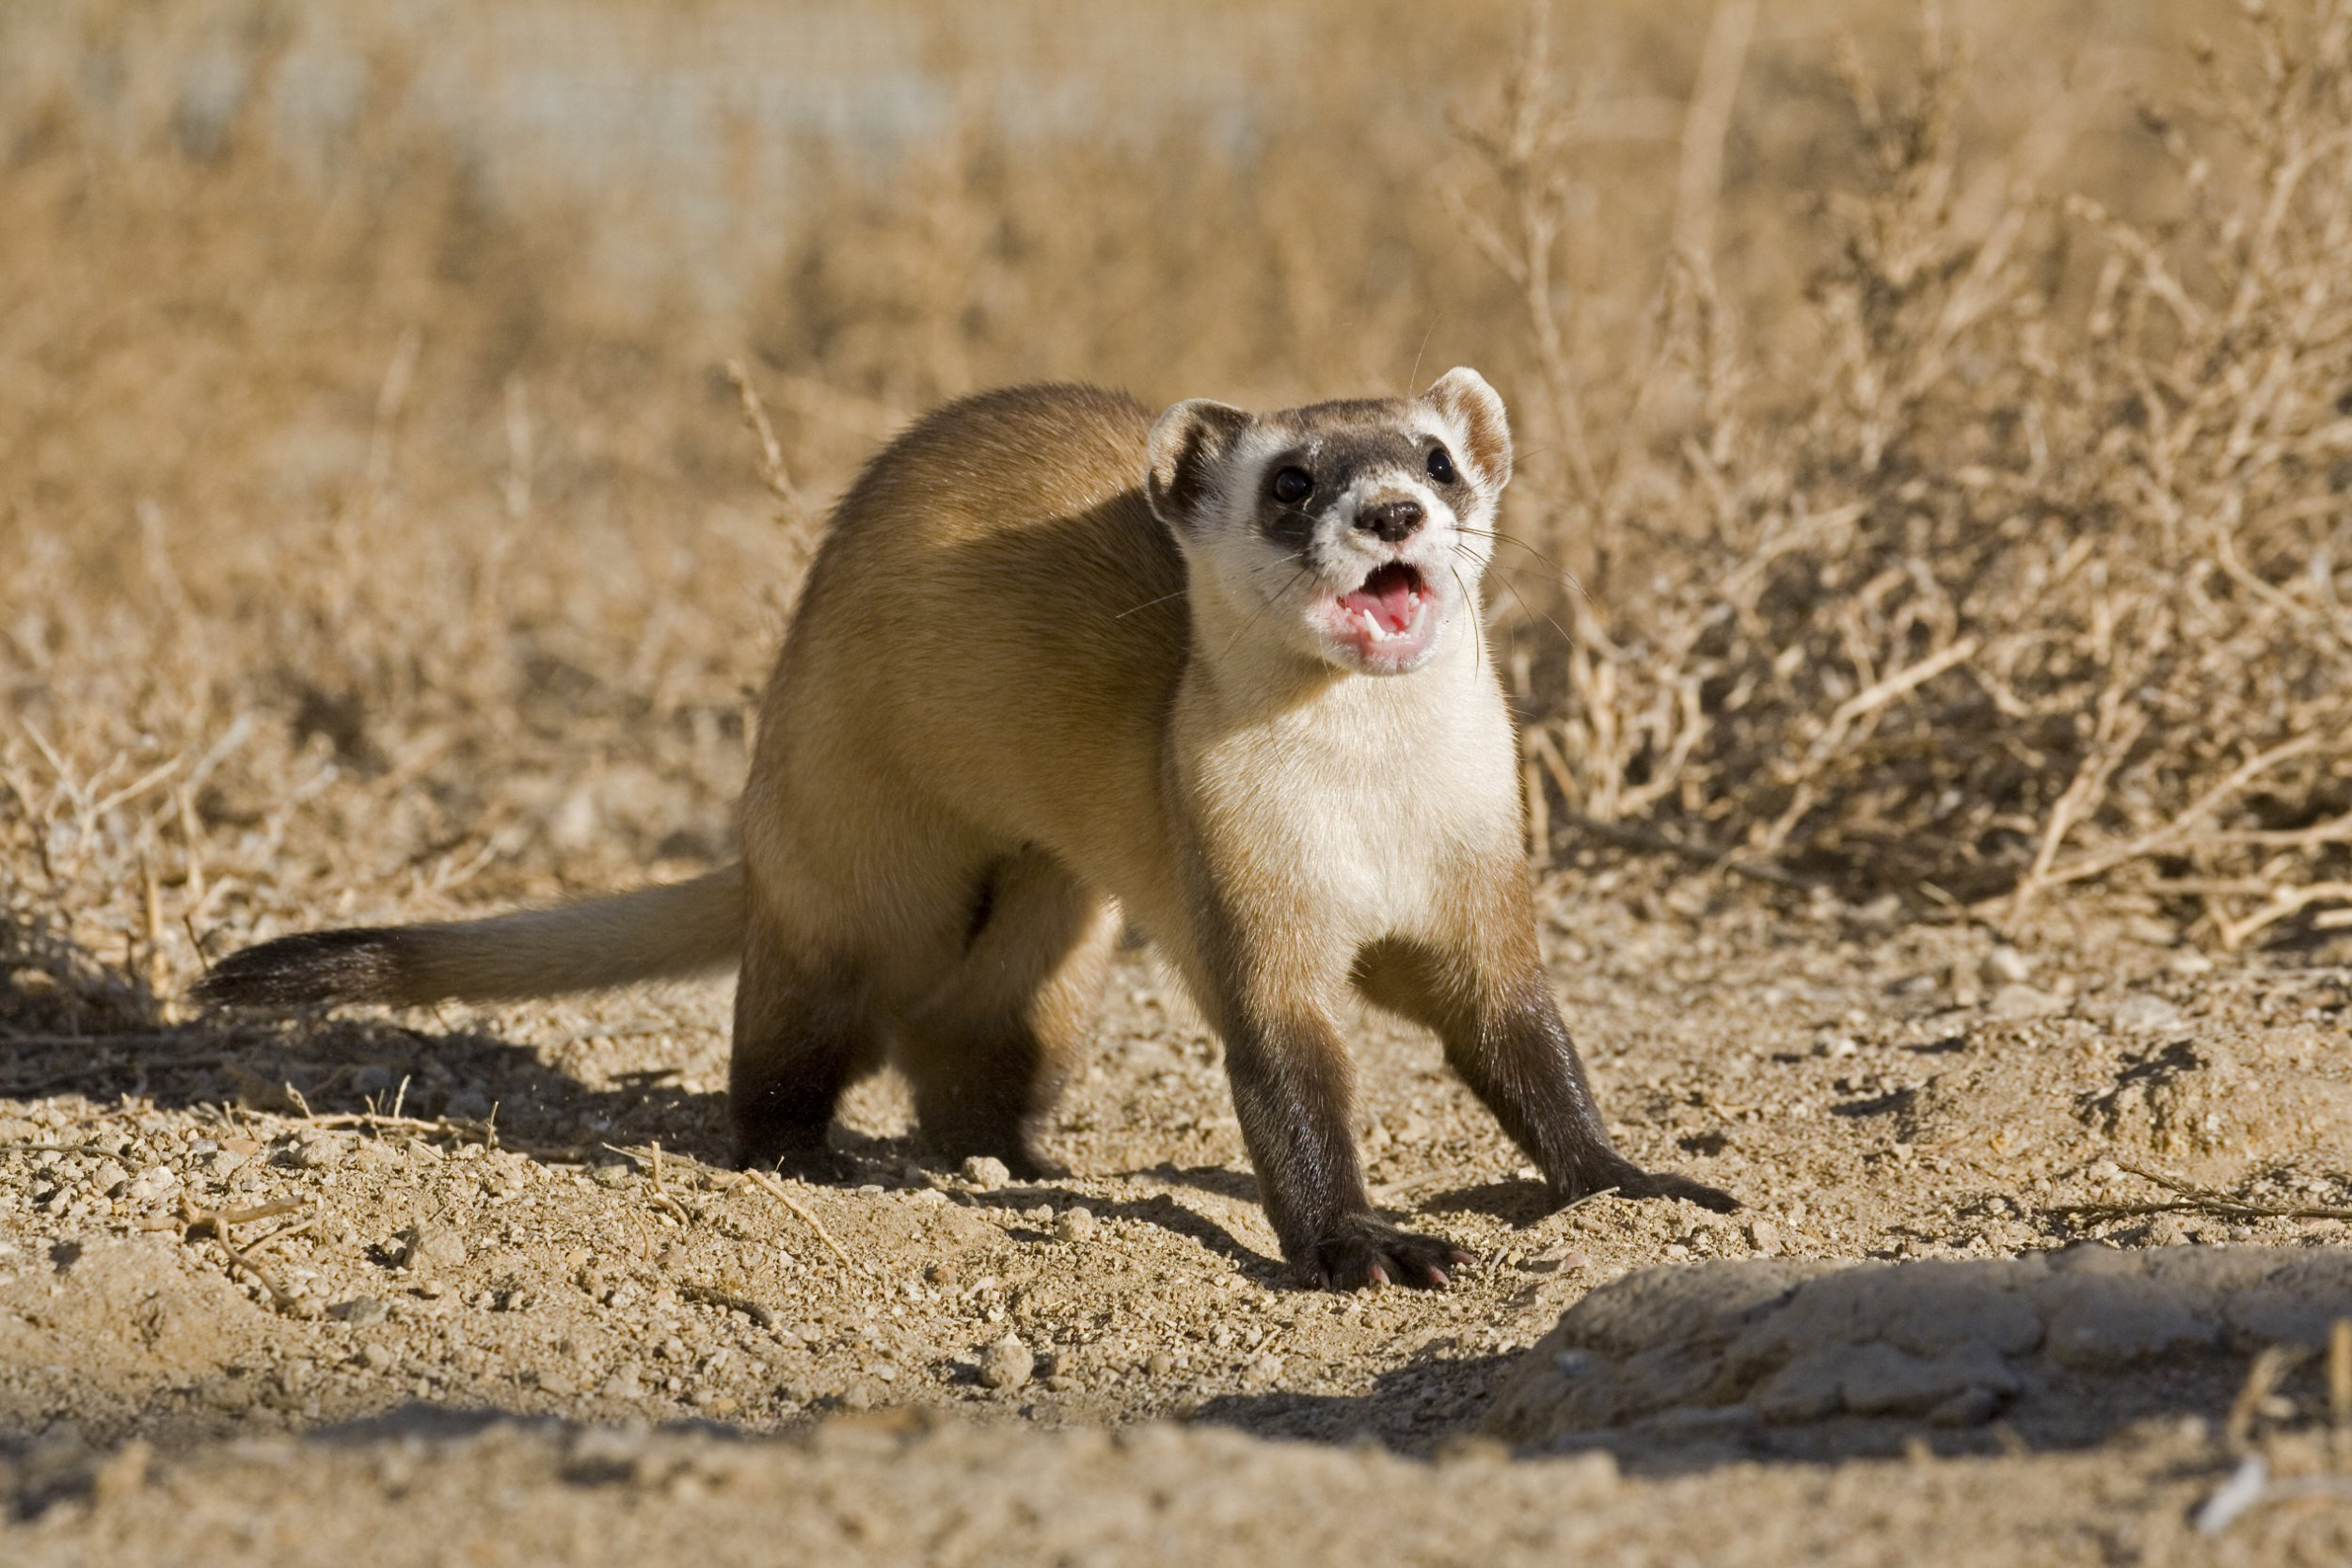 Endangered Black Footed Ferret, Mustela nigripes, which was thought to be extinct. A remnant population was discovered, which started a reintroduction program to re-establish a population on the wild prairie. South Dakota, New Mexico, Arizona, Colorado, Wyoming, Montana, Utah, Mexico, Canada. Black footed ferret, blackfooted ferret, black foot ferret, blackfoot ferret.